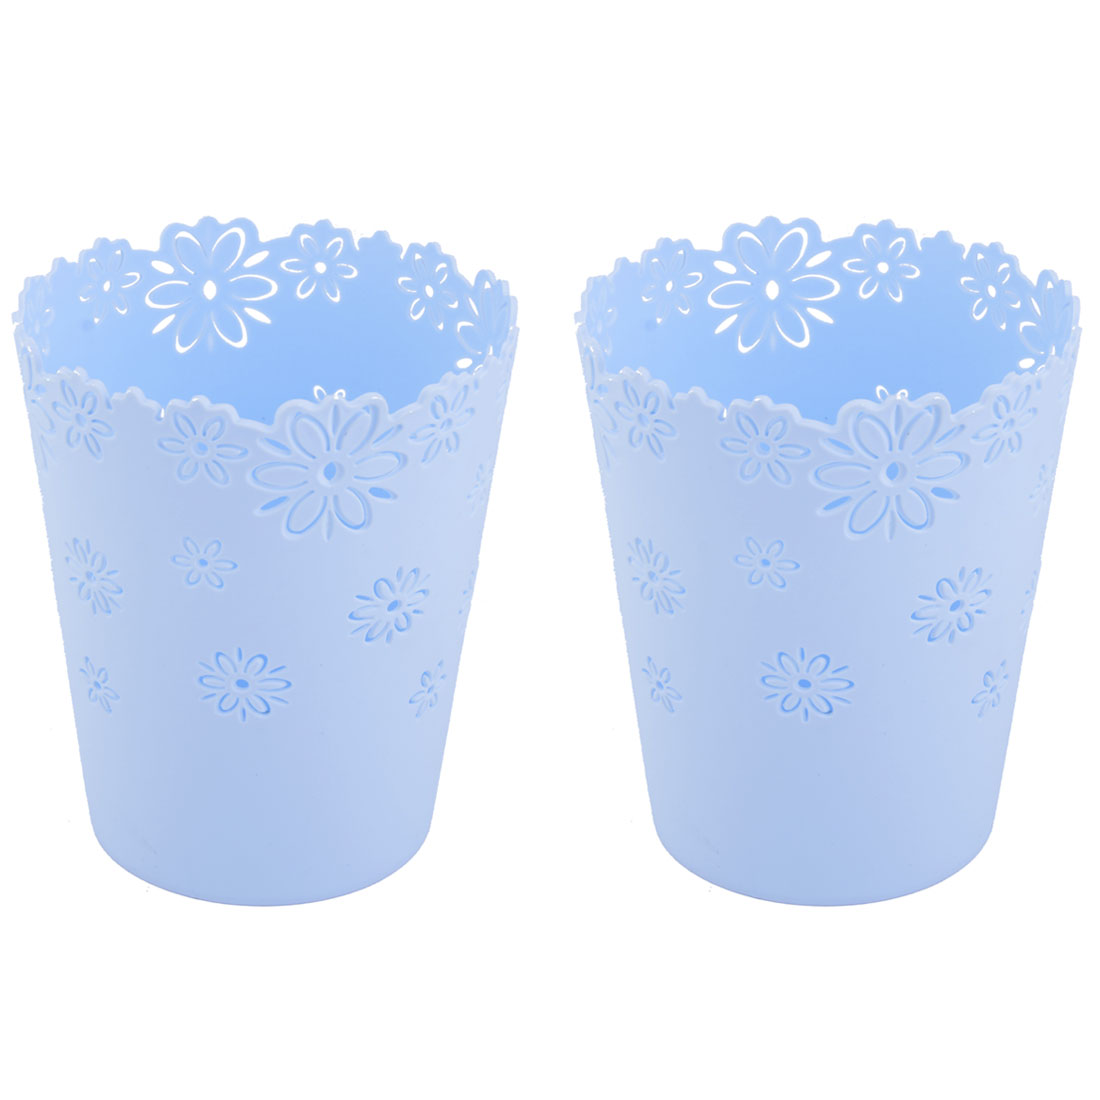 Home Table Plastic Hollow Out Flower Design Staionery Pen Storage Basket Sky Blue 2pcs